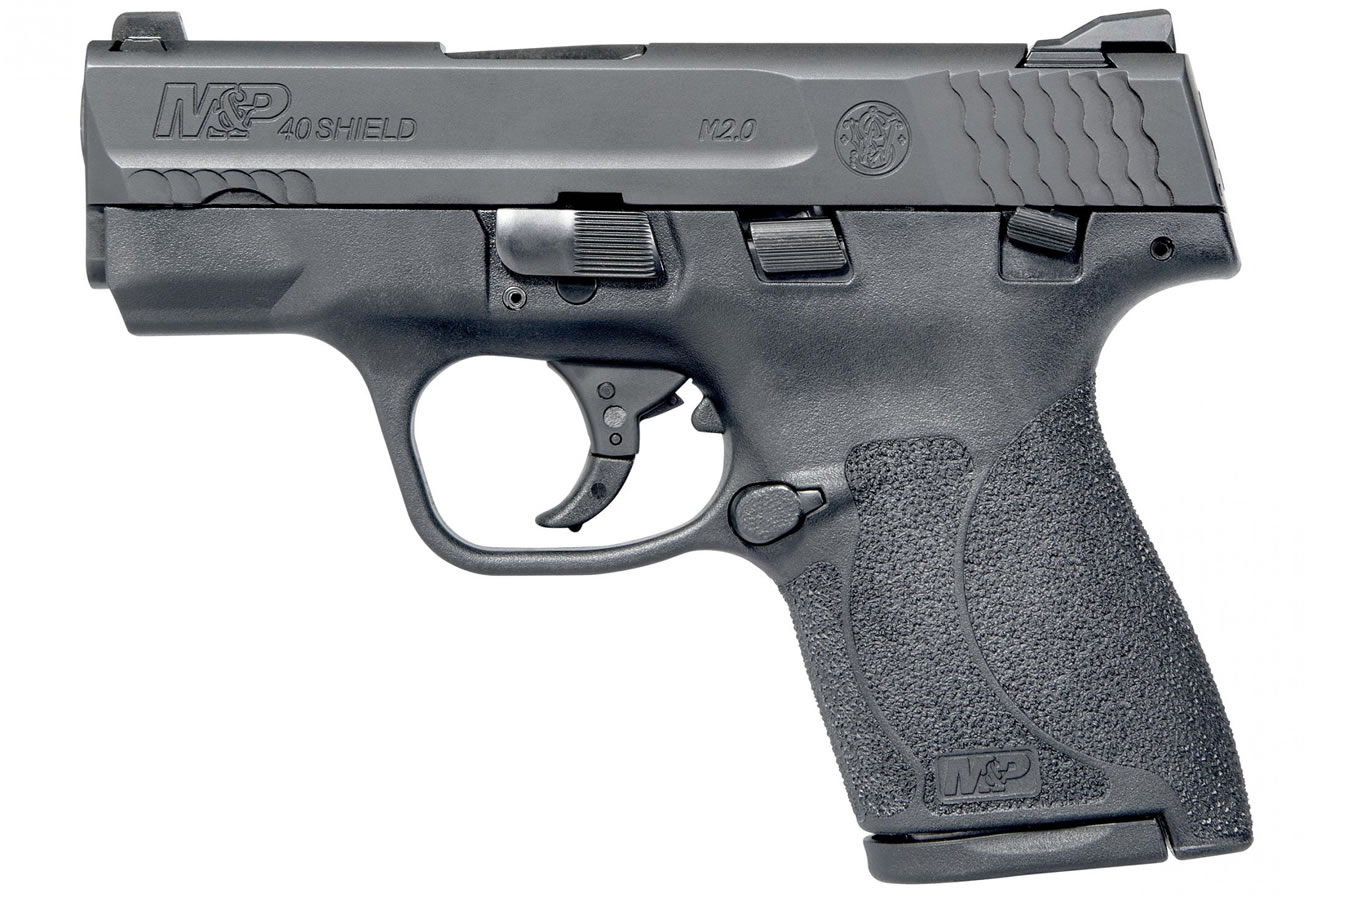 MP40 SHIELD M2.0 40SW WITH THUMB SAFETY